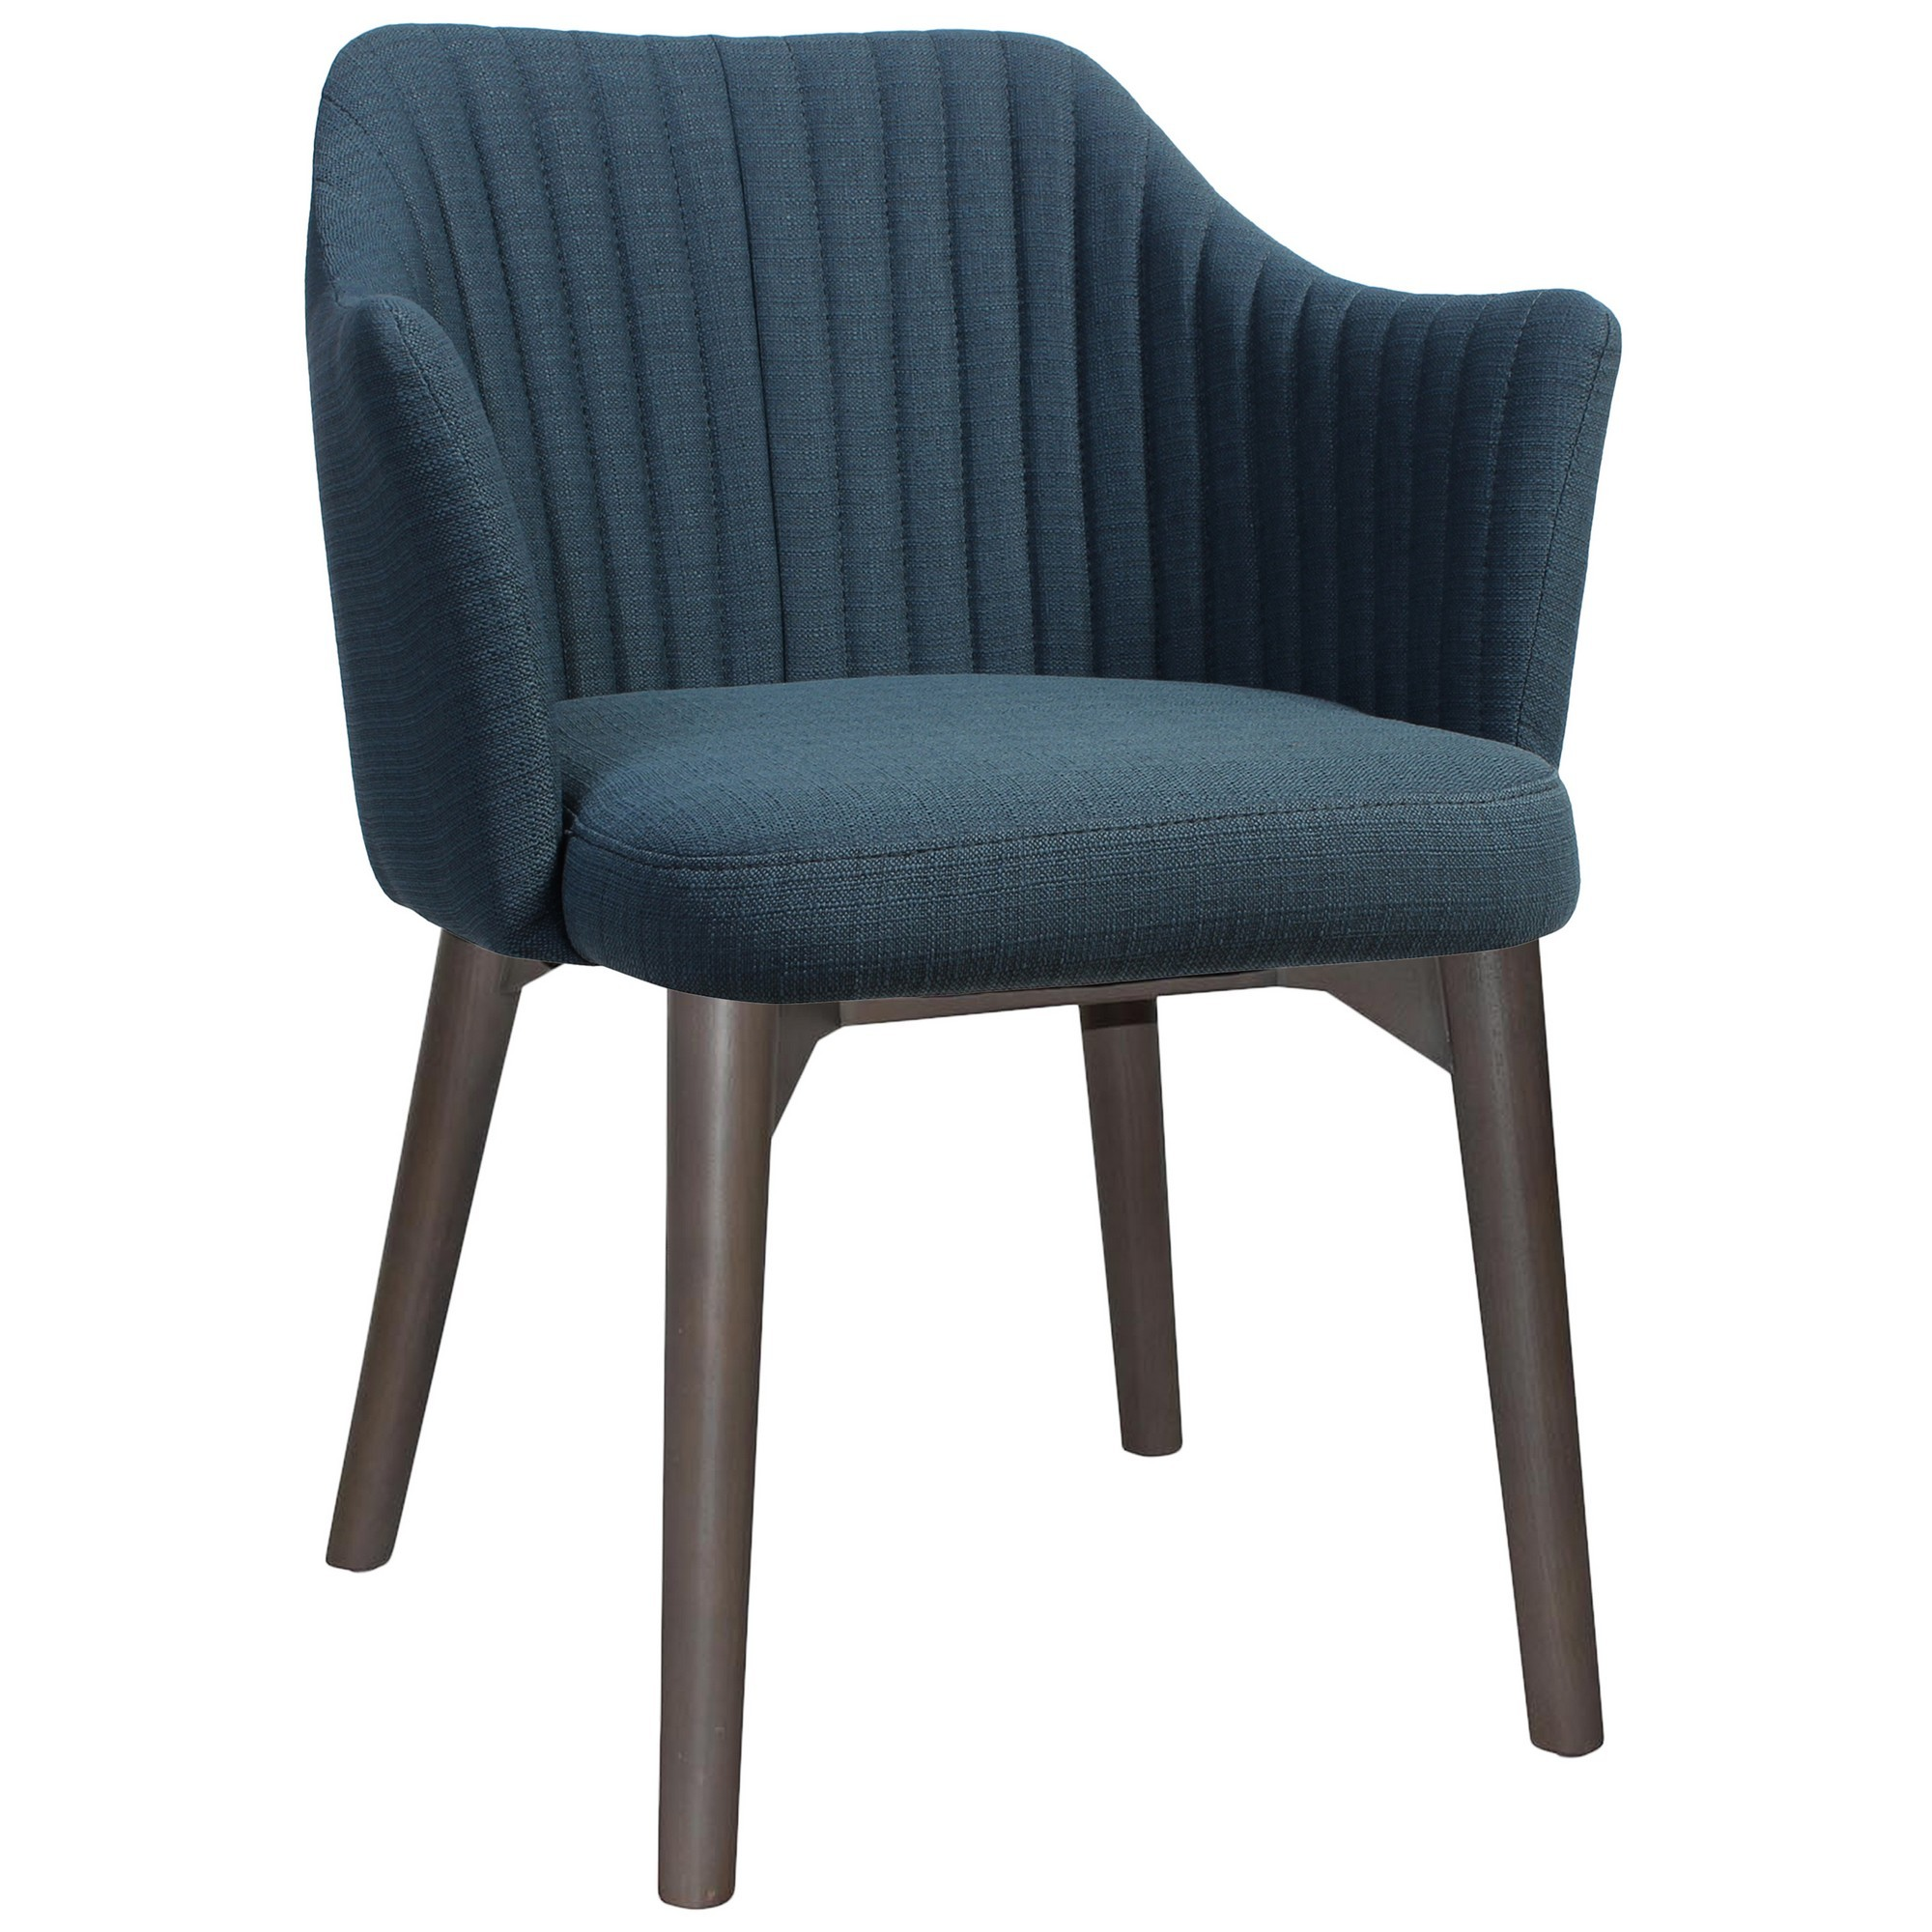 Coogee Commercial Grade Fabric Dining Armchair, Timber Leg, Blue / Olive Grey